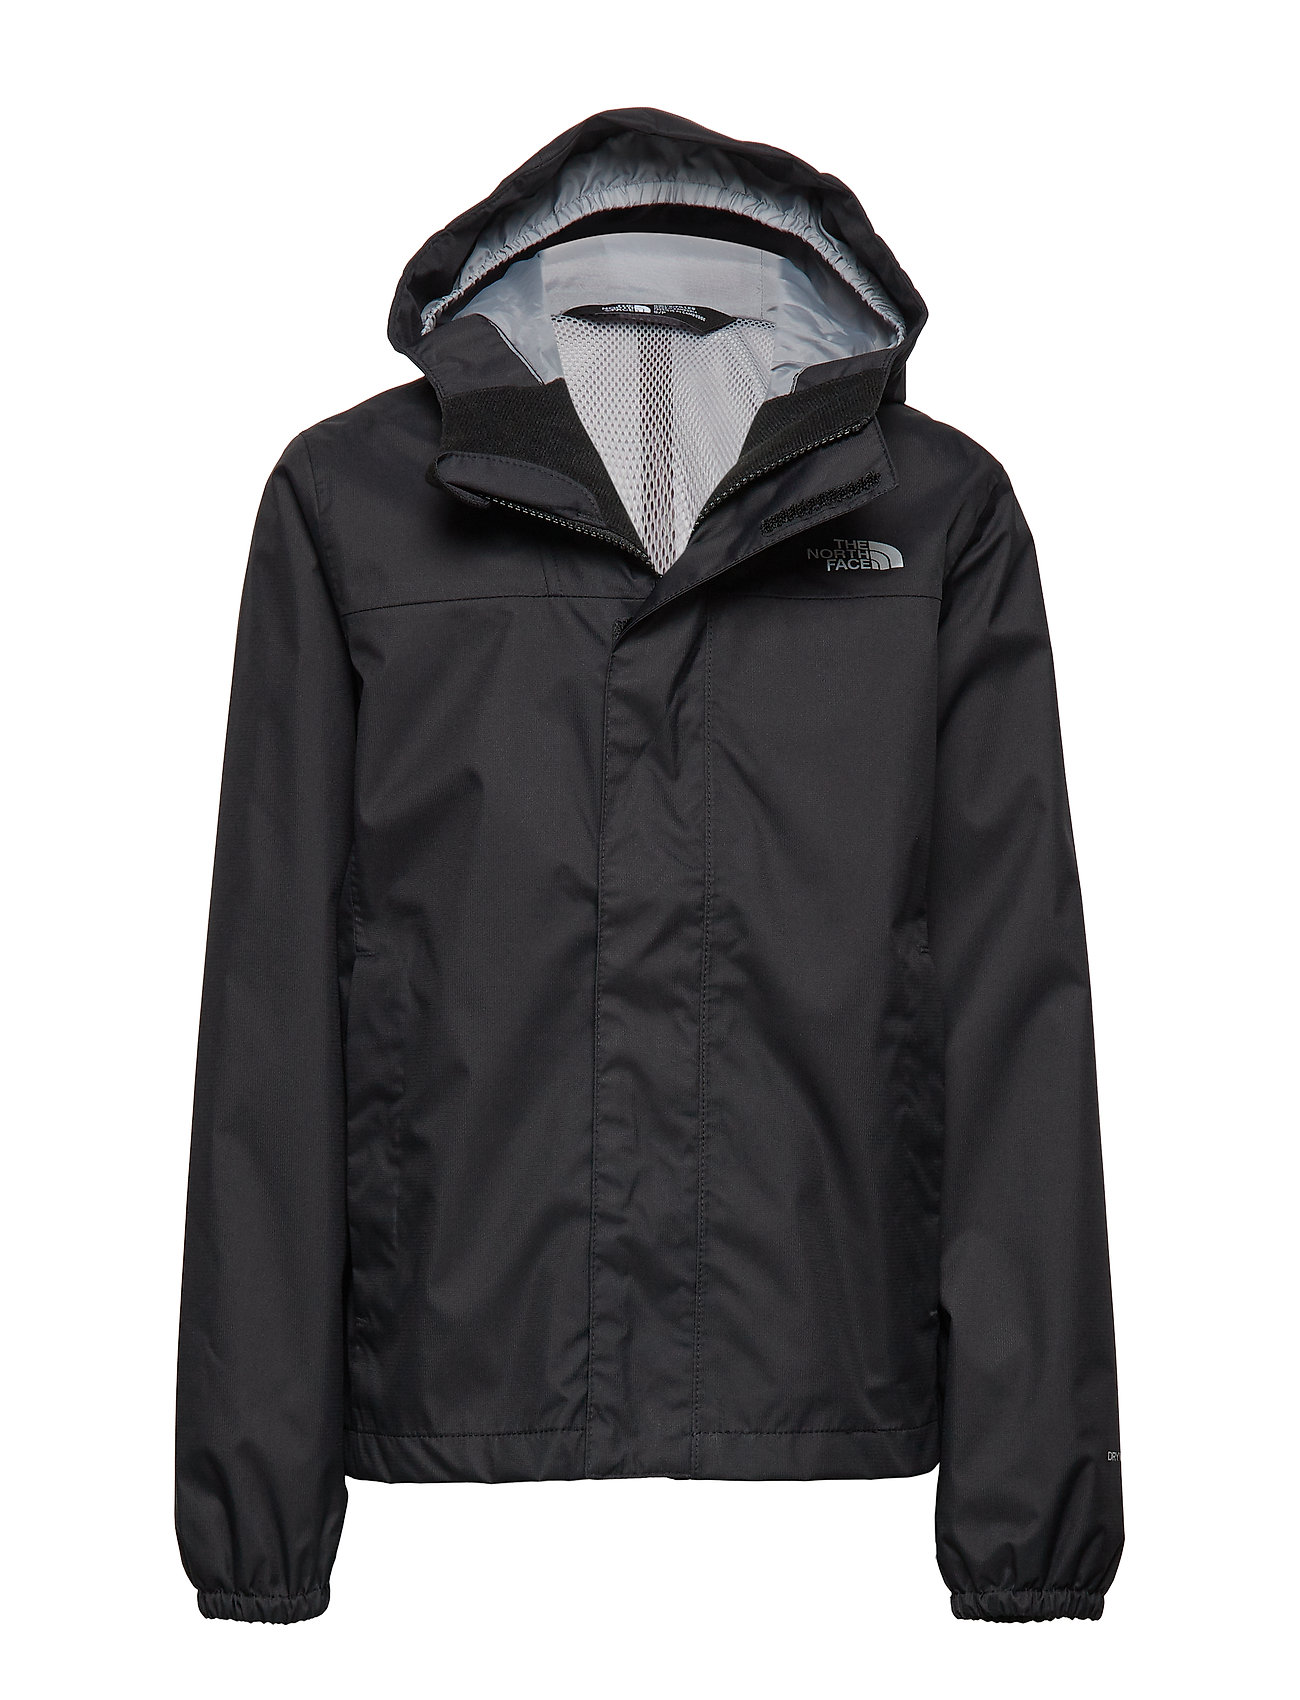 The North Face G RESOLVE REFLECTIVE - TNF BLACK